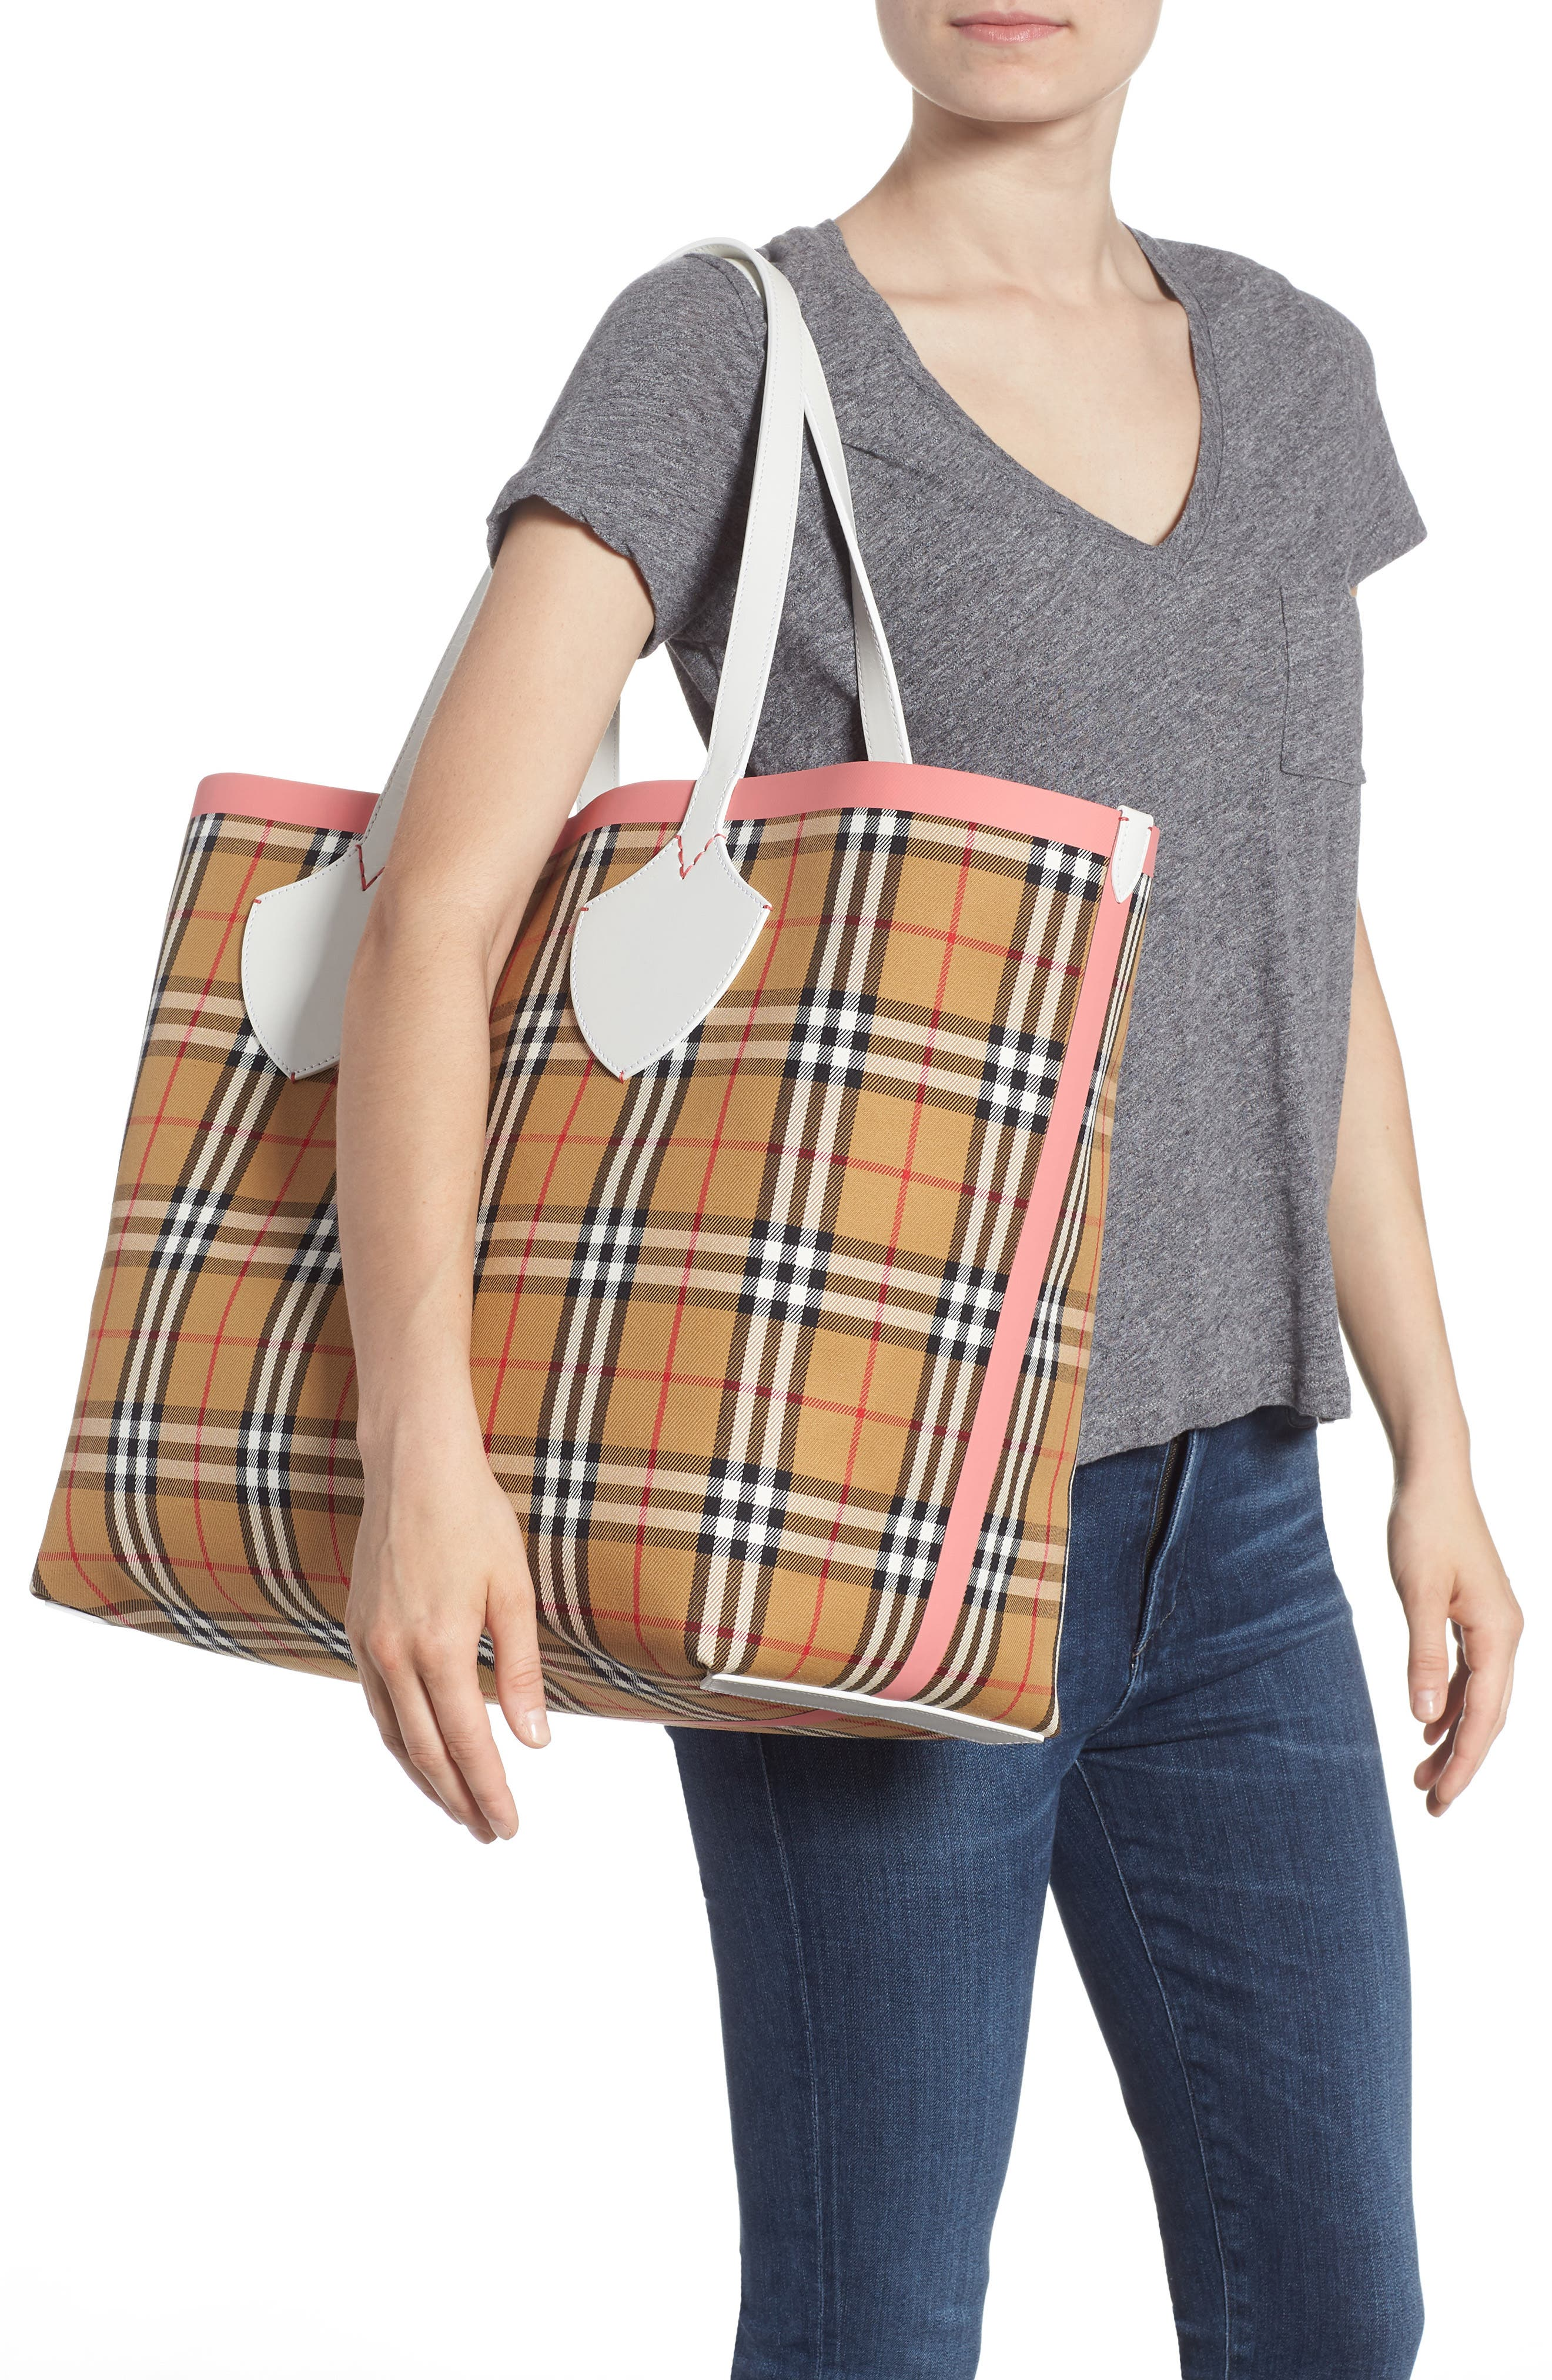 Giant Check Reversible Tote,                             Alternate thumbnail 2, color,                             BEIGE/ PINK/ CHALK WHITE